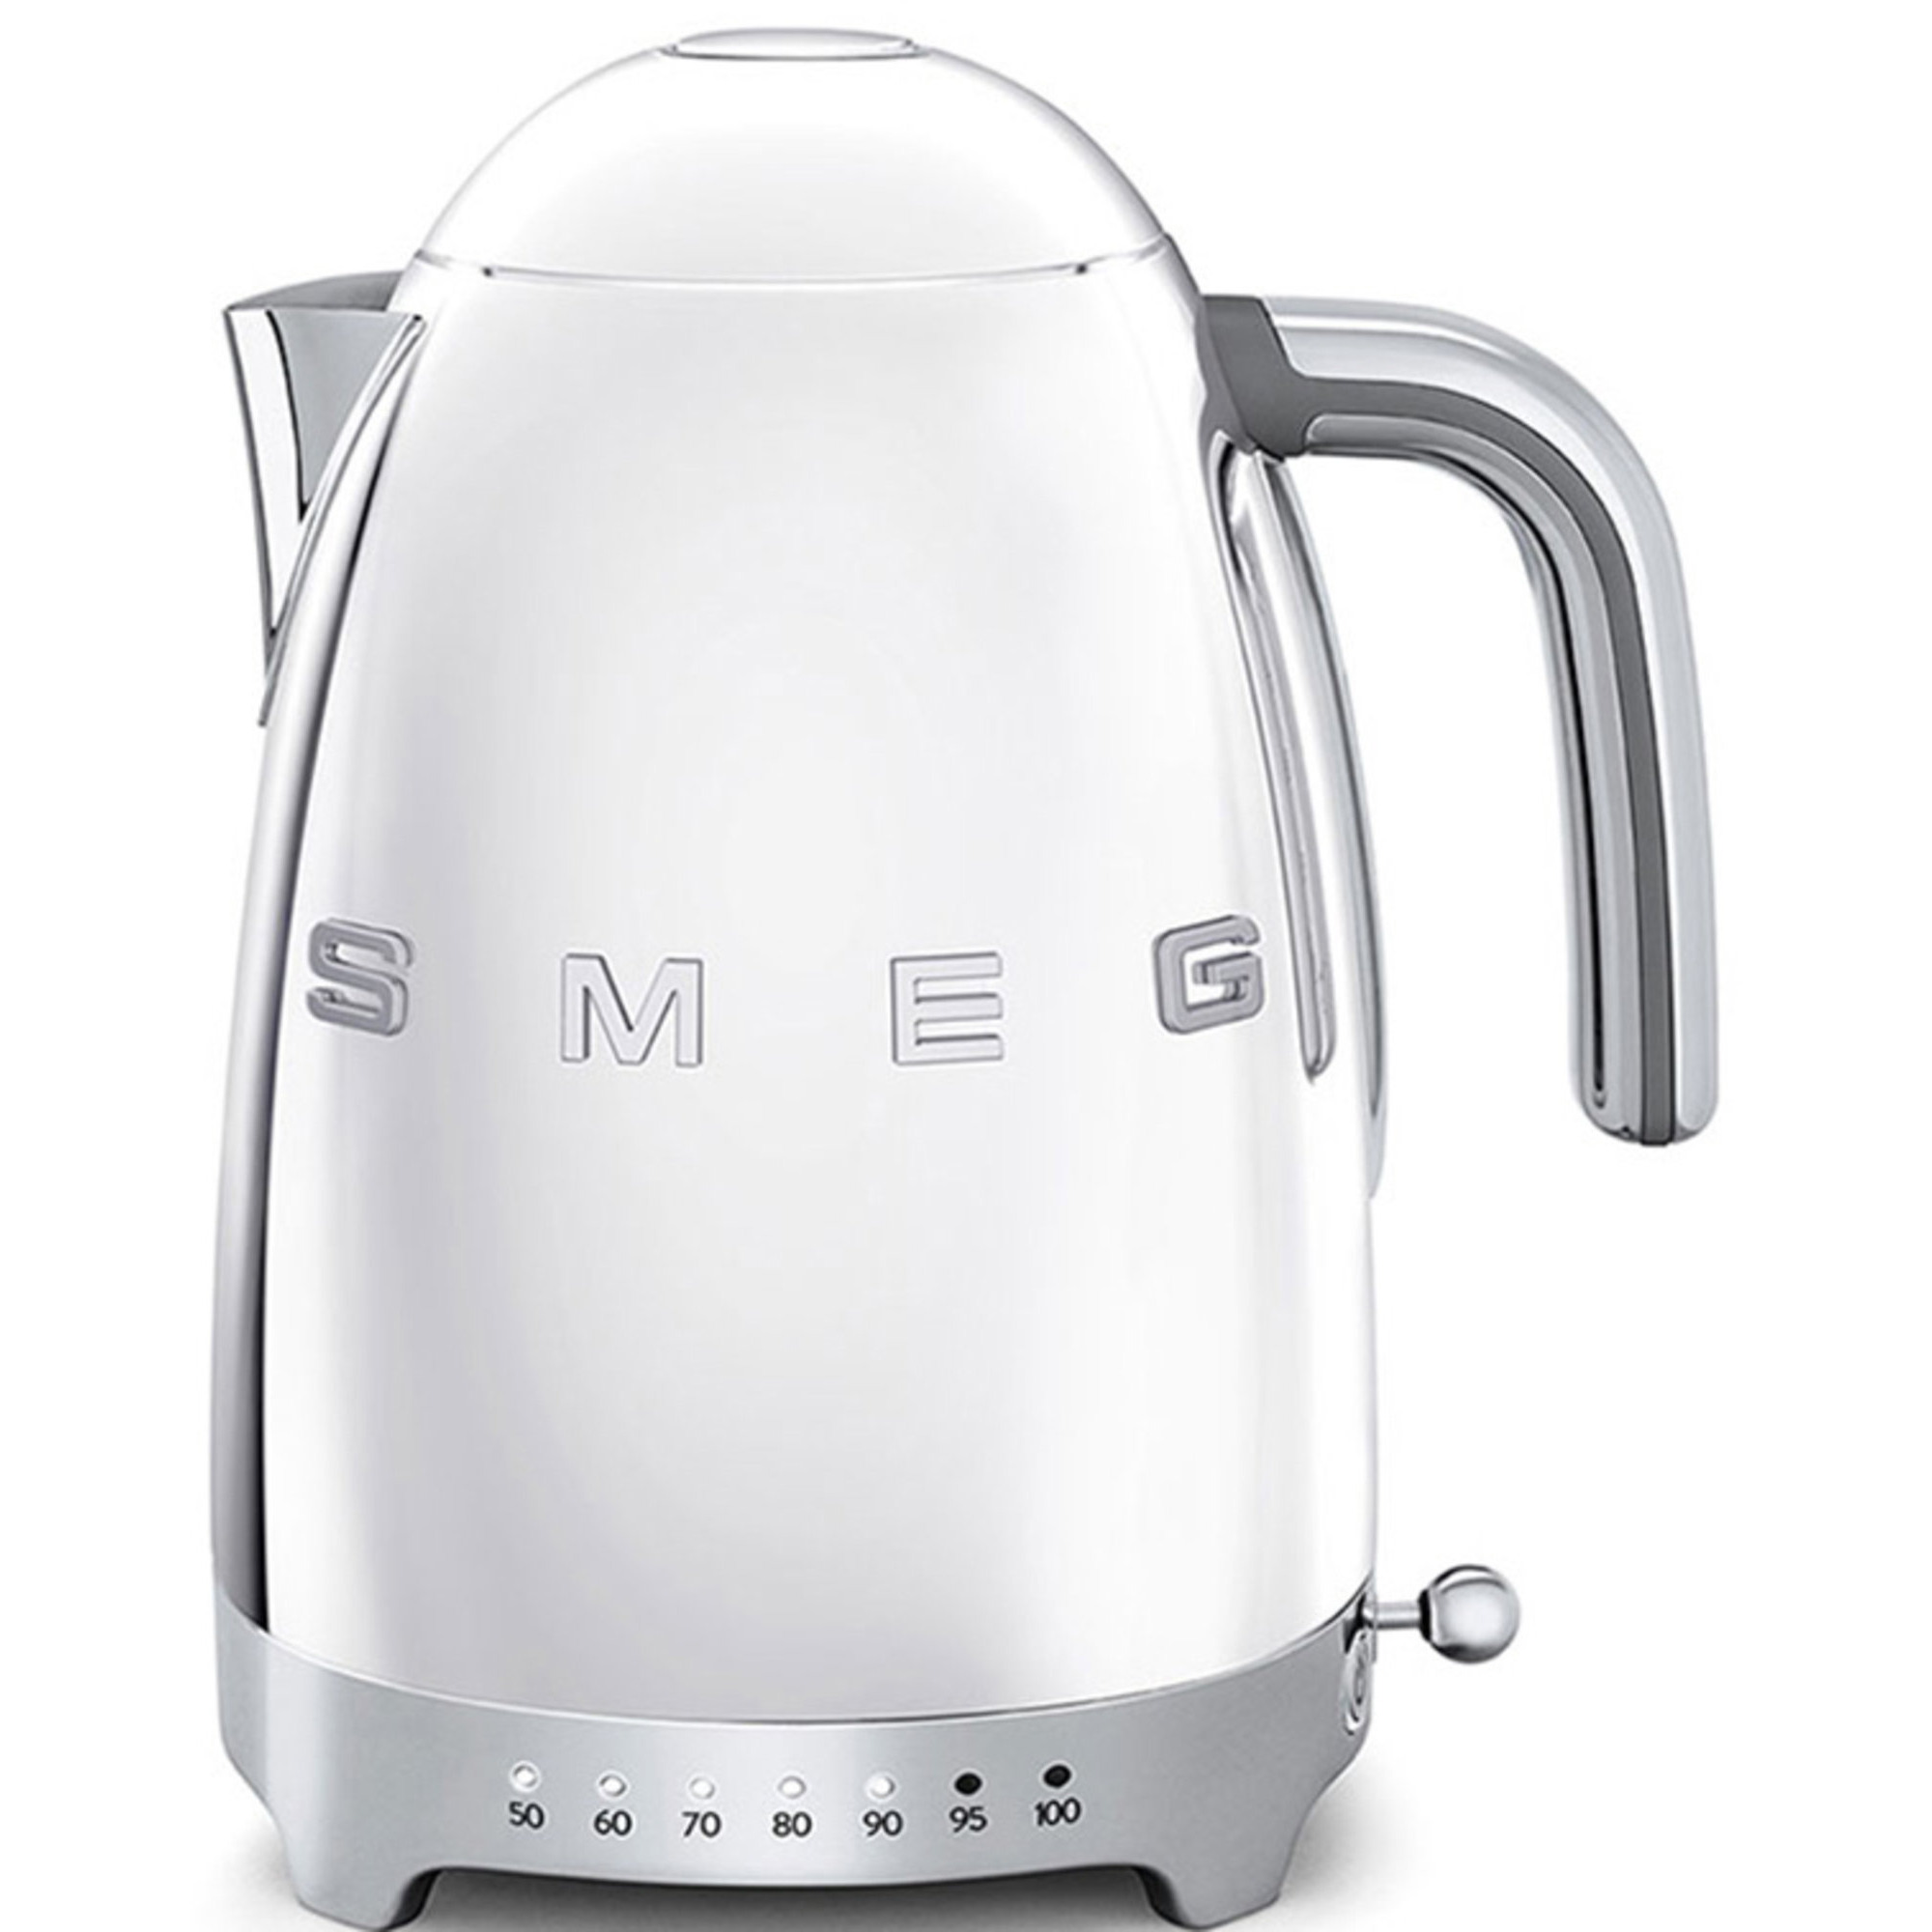 Smeg Vattenkokare 17 l med Variable Temperatur Stål